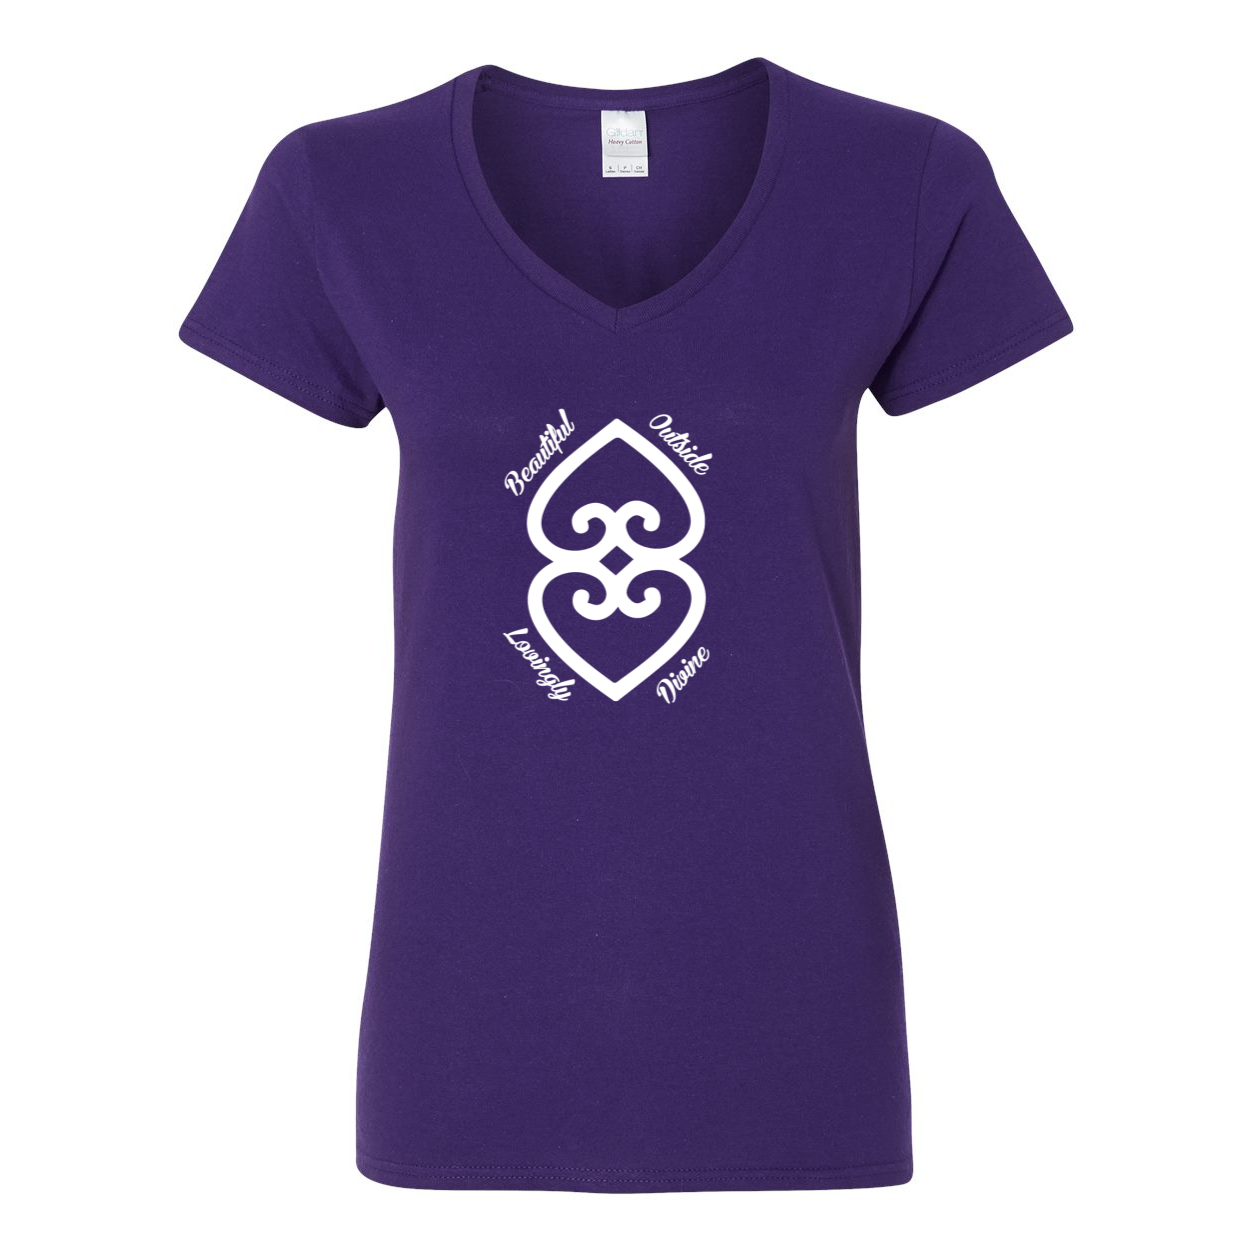 B.O.L.D. Logo Tee for Ladies | Ladies' T-shirt